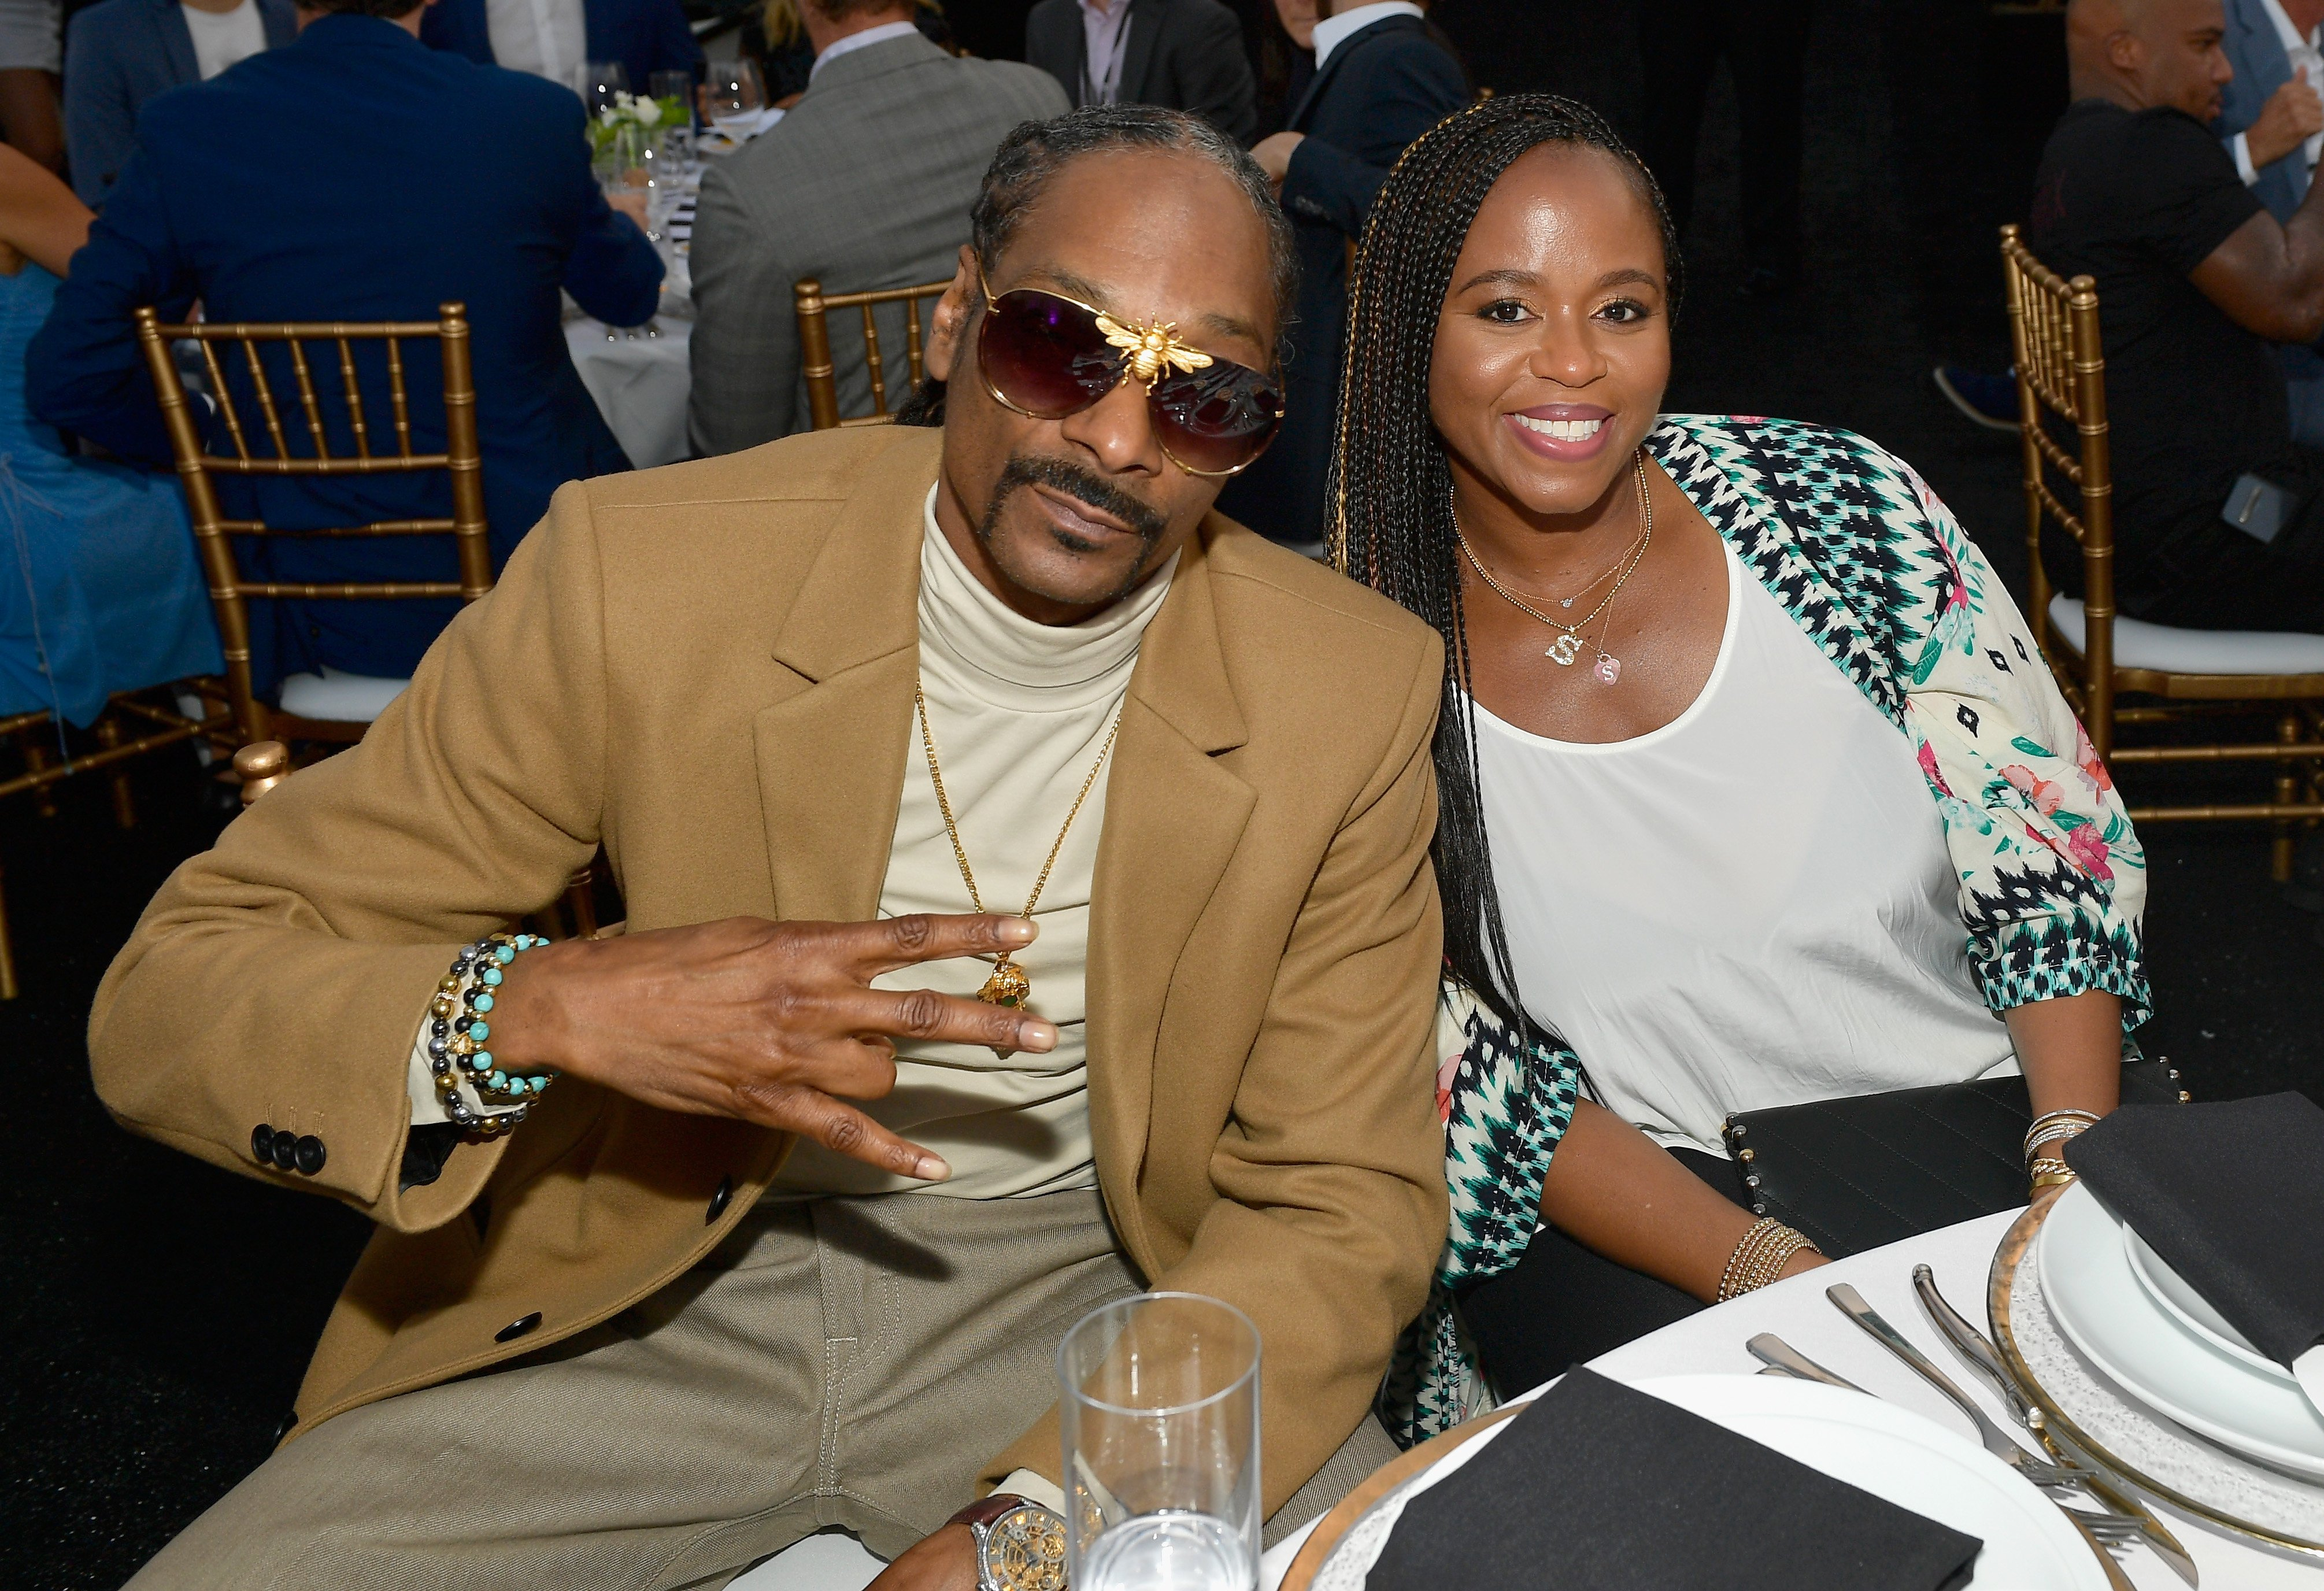 Snoop Dogg and Shante Broadus at the 33rd Annual Cedars-Sinai Sports Spectacular at The Compound on July 15, 2018   Photo: Getty Images